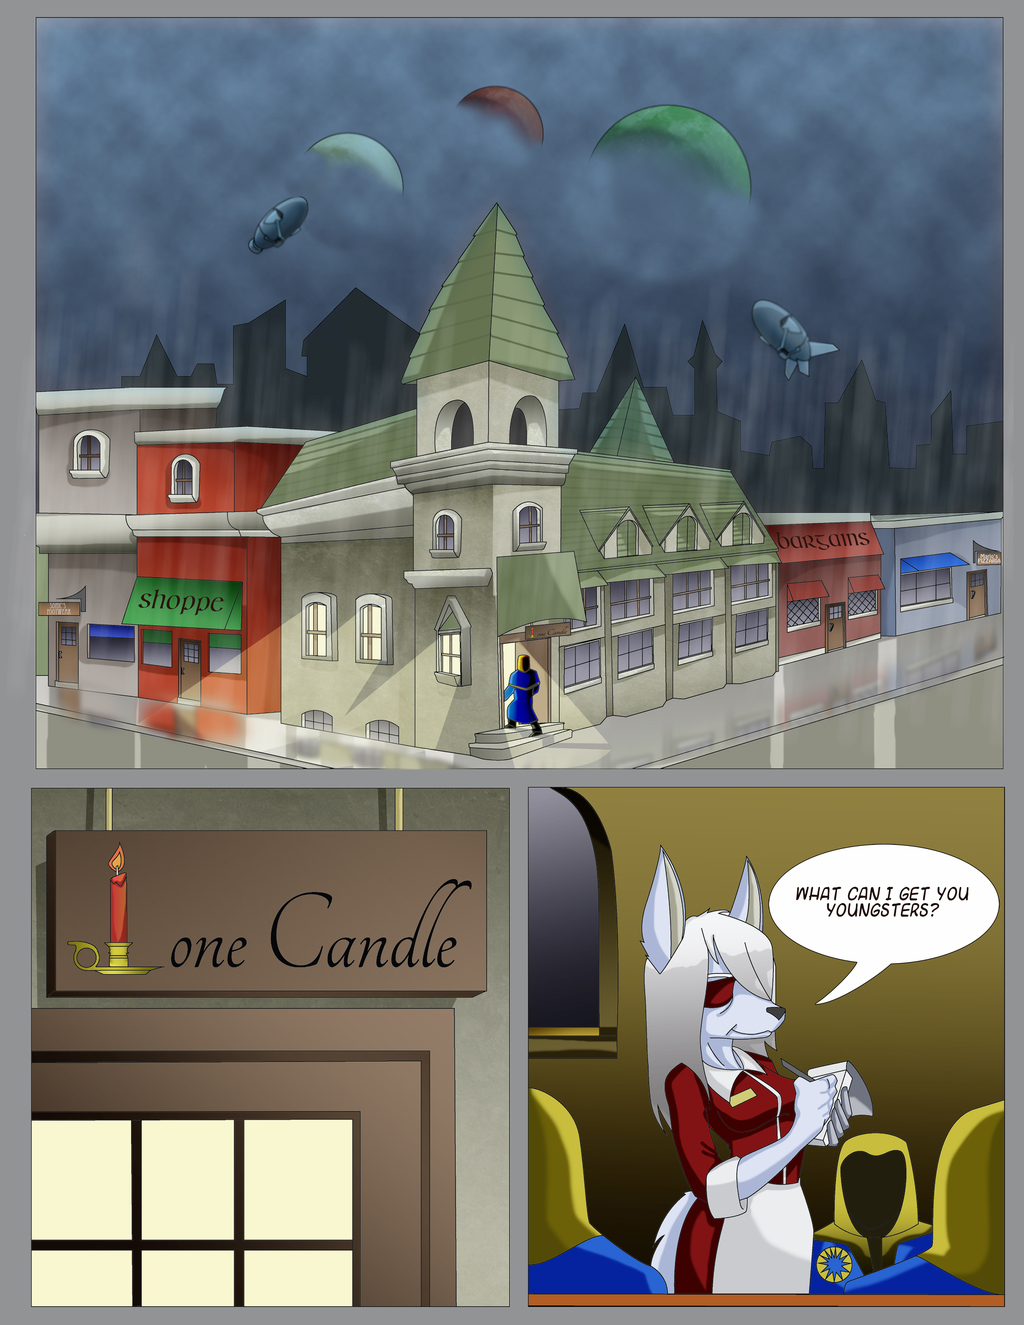 Featured image: Lone Candle, Book 1, Page 2